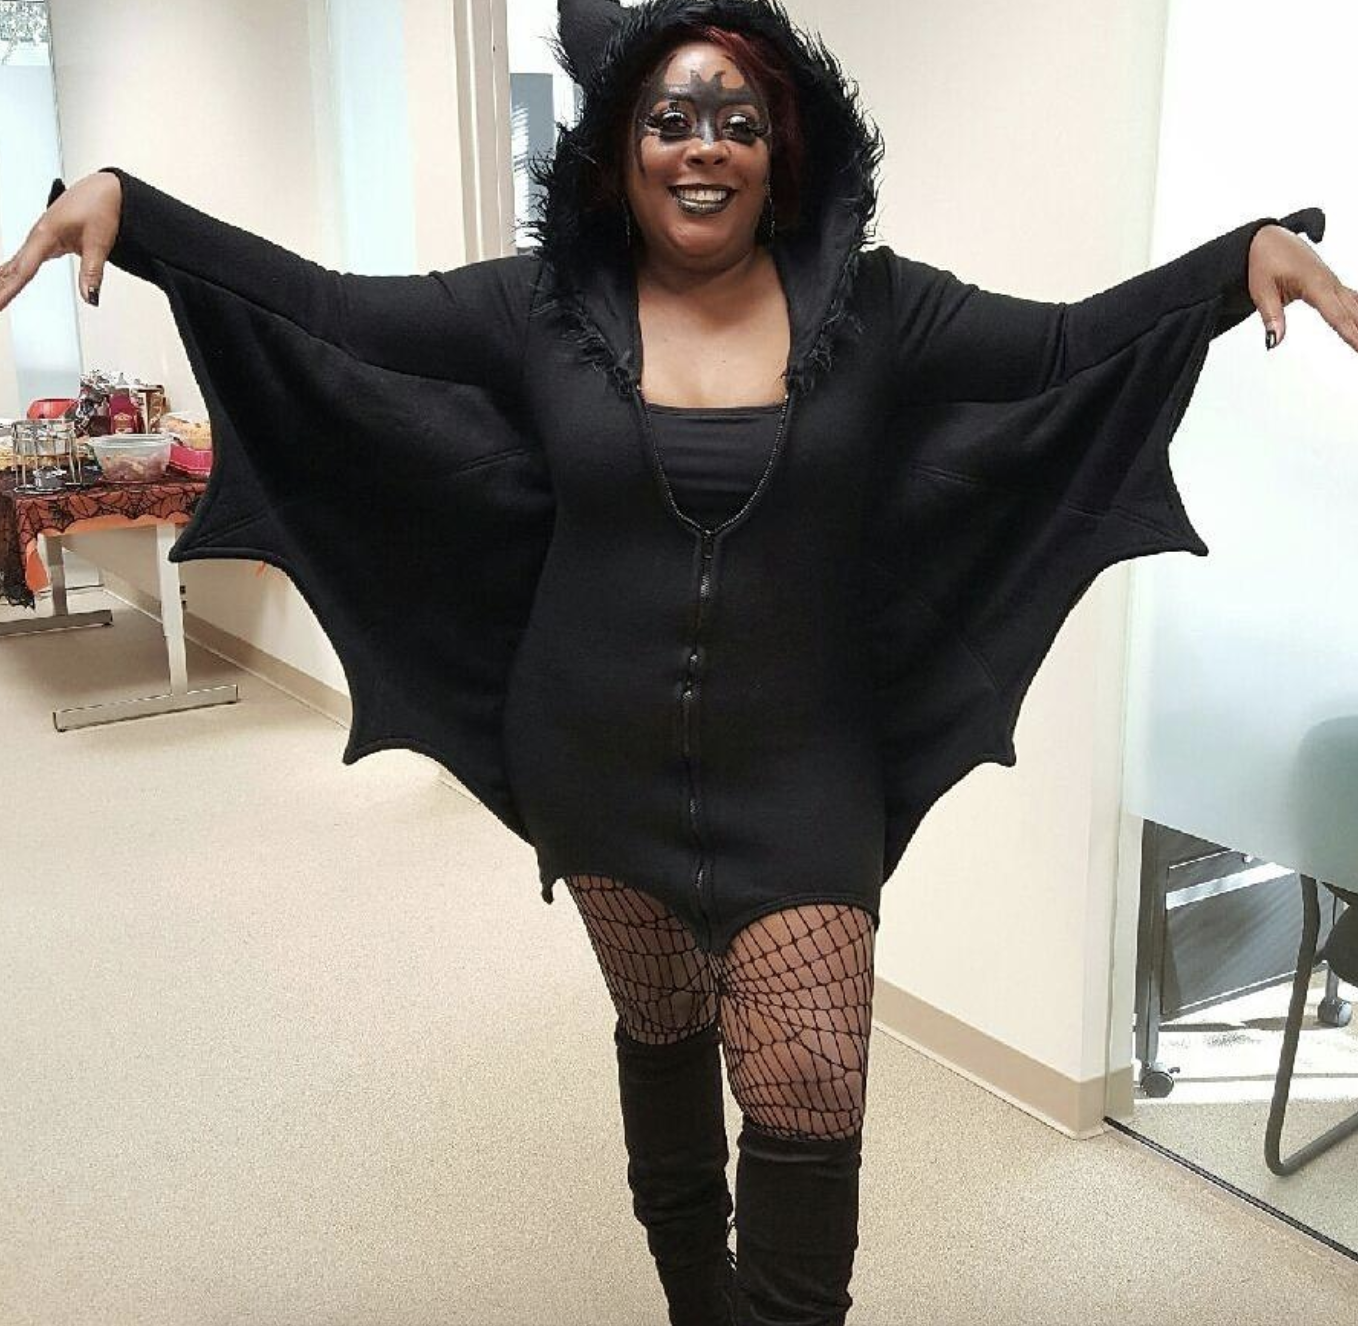 reviewer wearing the black bat-shaped sweater dress